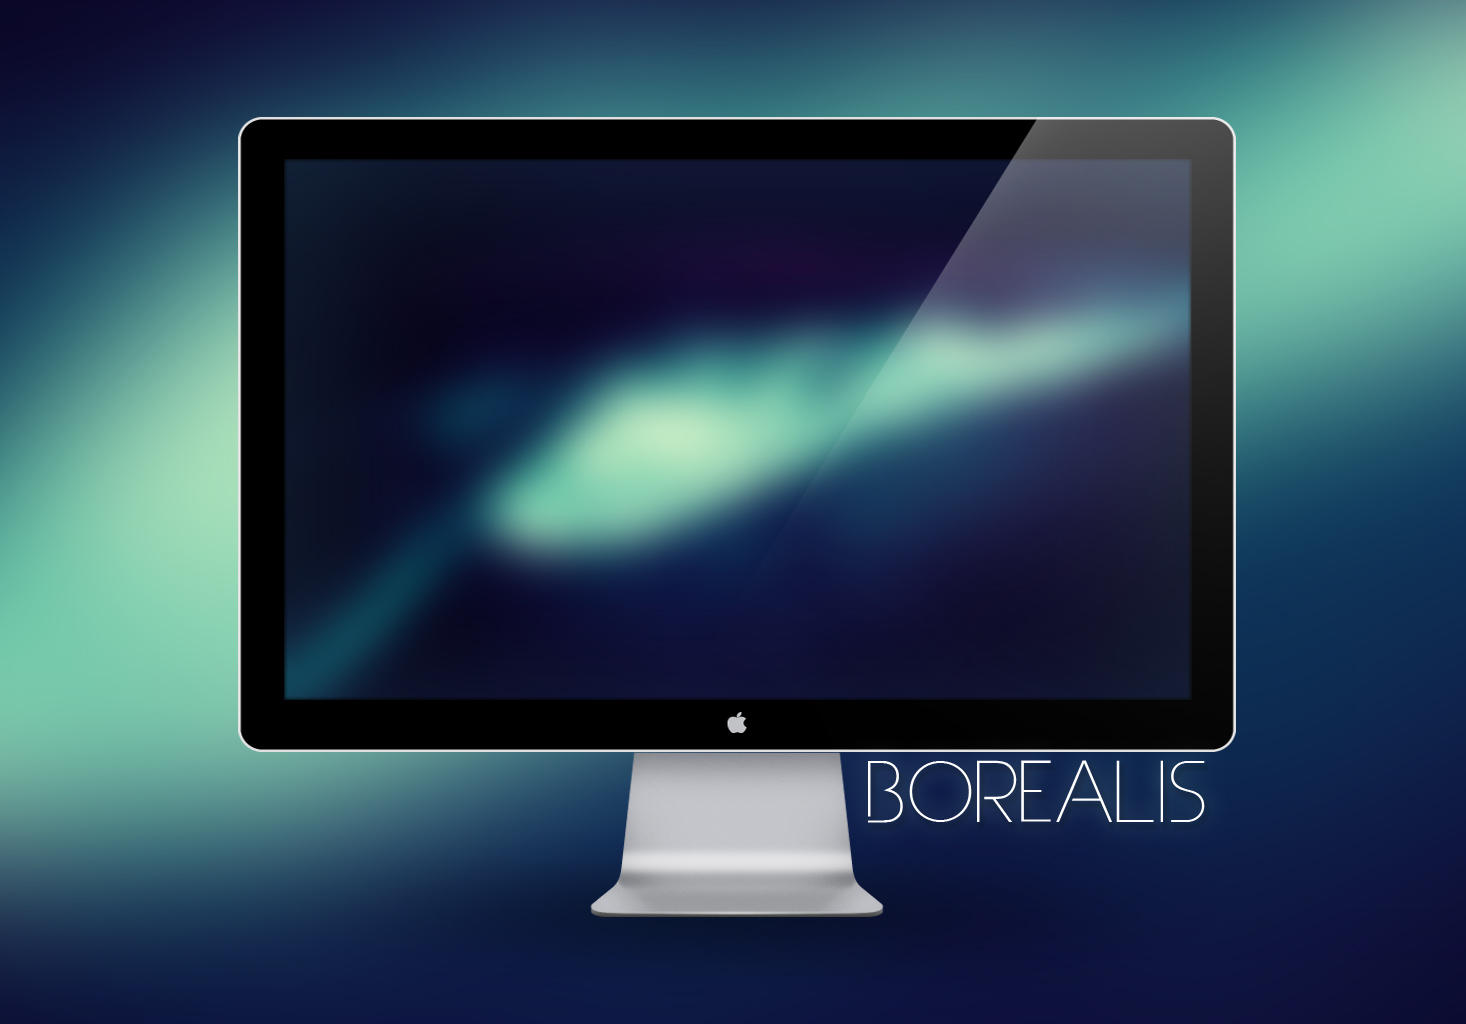 Borealis - Shades of Blue by spookd13